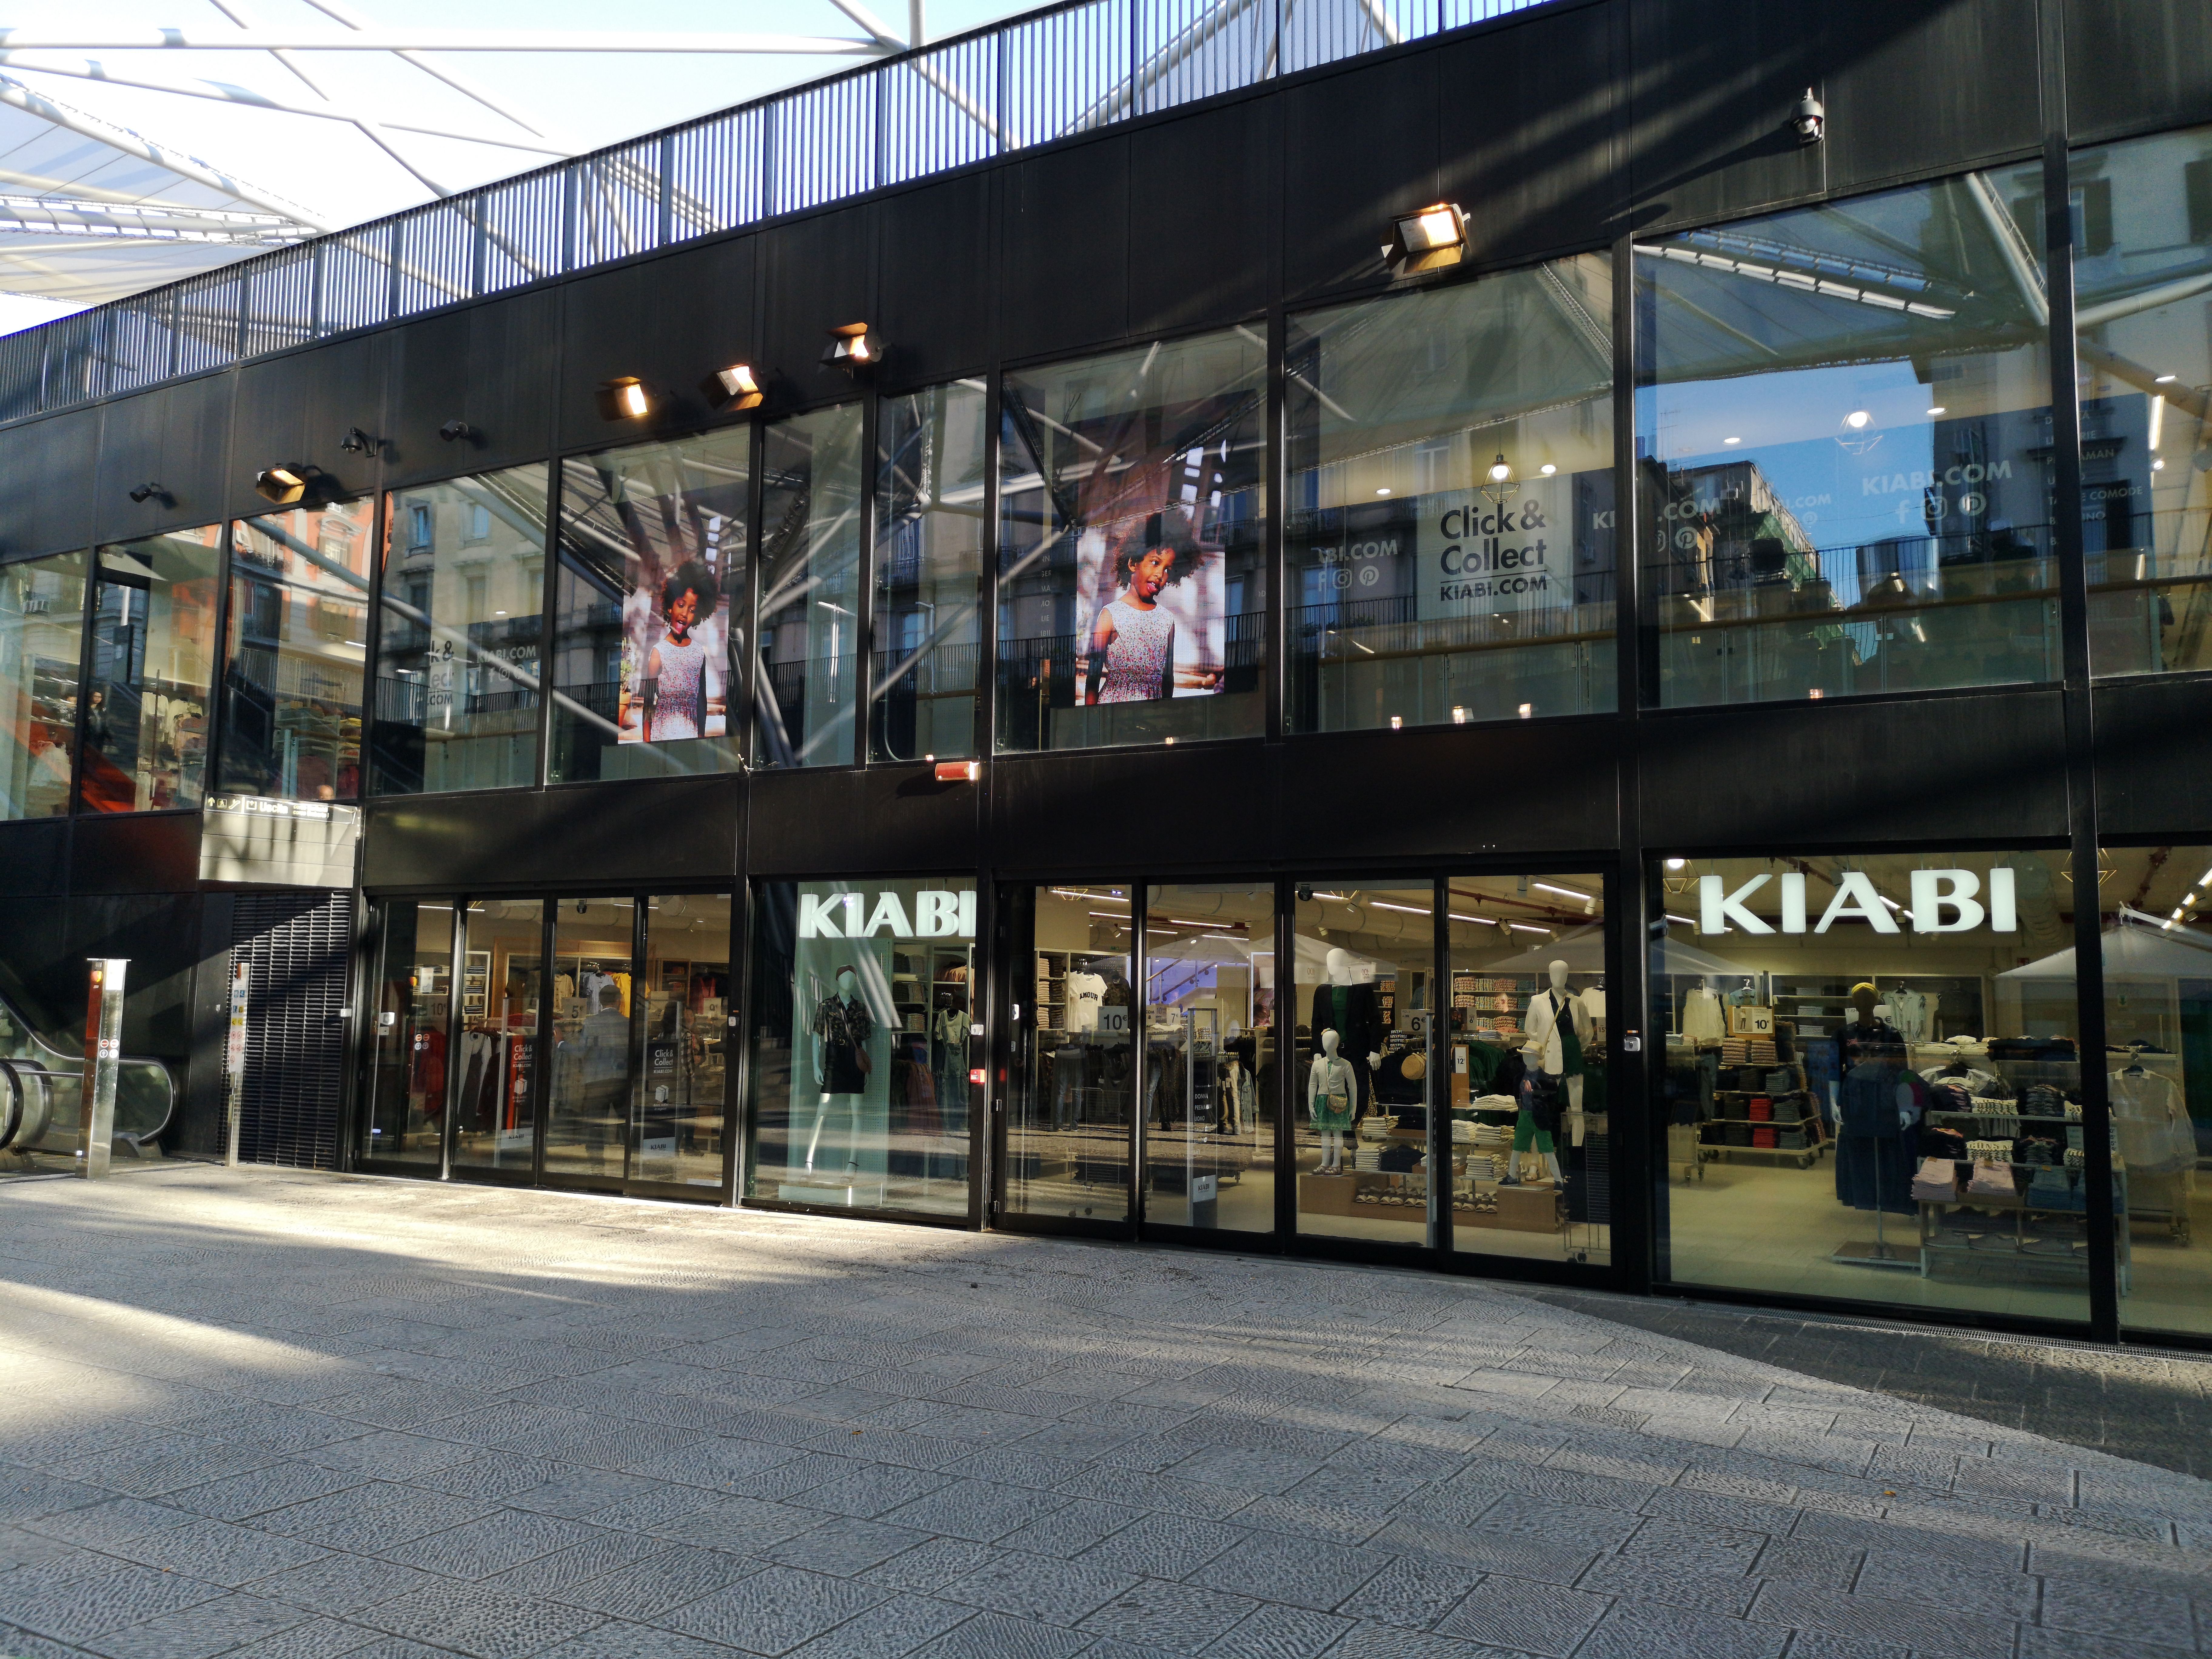 Kiabi opens its doors to franchising in   Italy